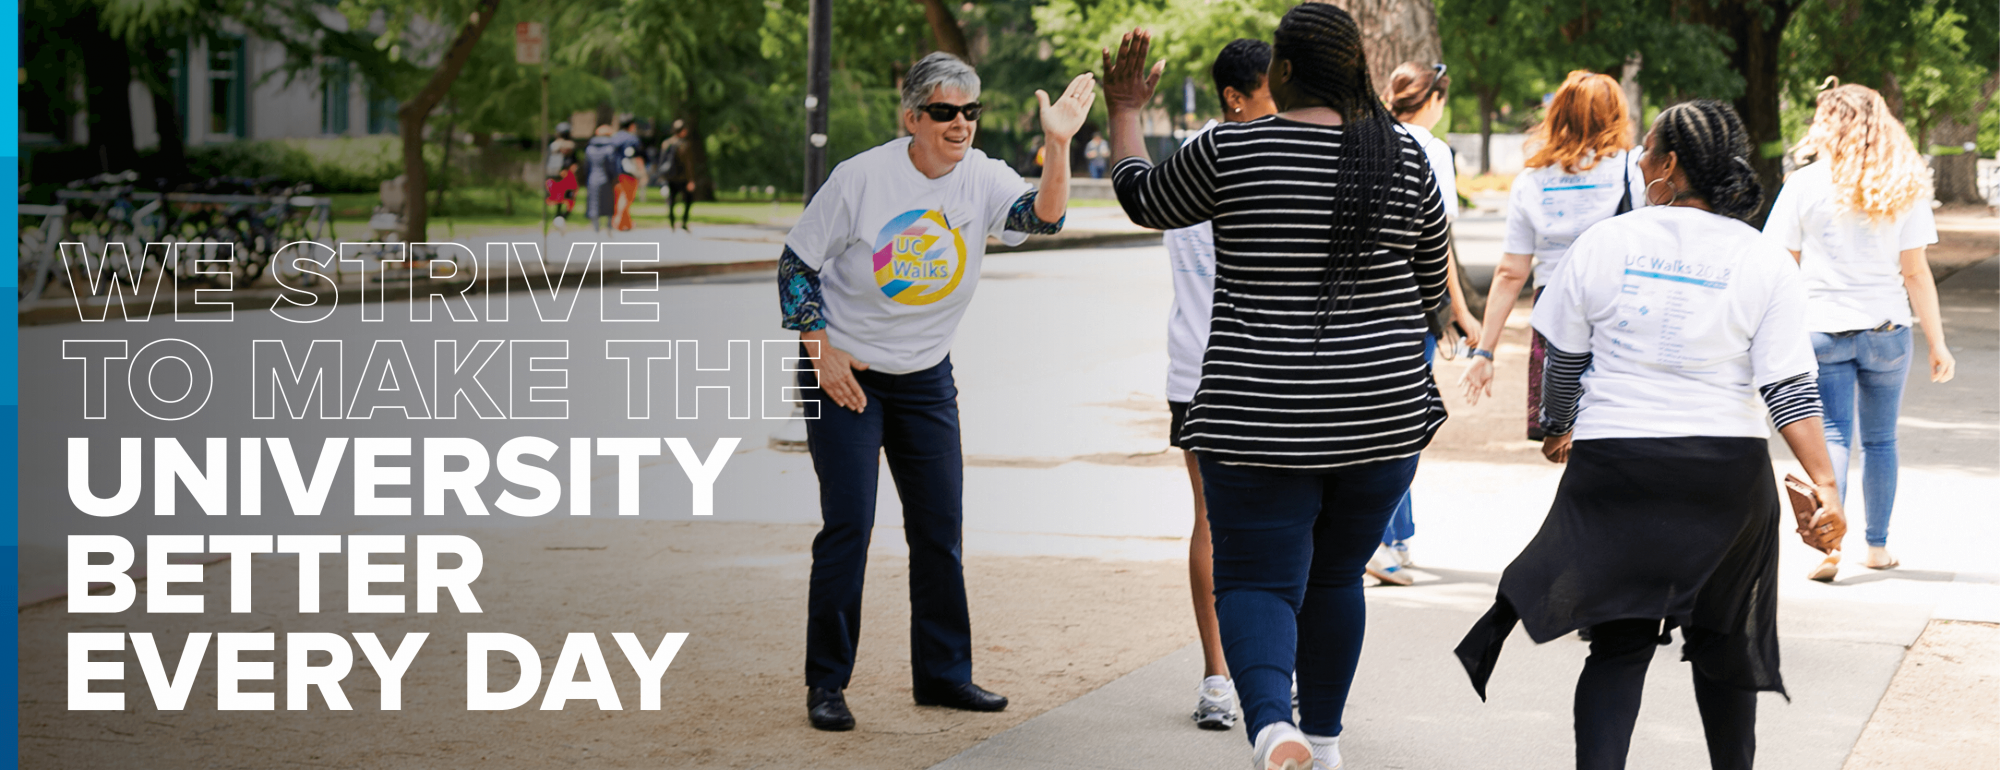 """We strive to make the university better every day."" Vice Chancellor Kelly Ratliff high-fives collagues during UC walks event"